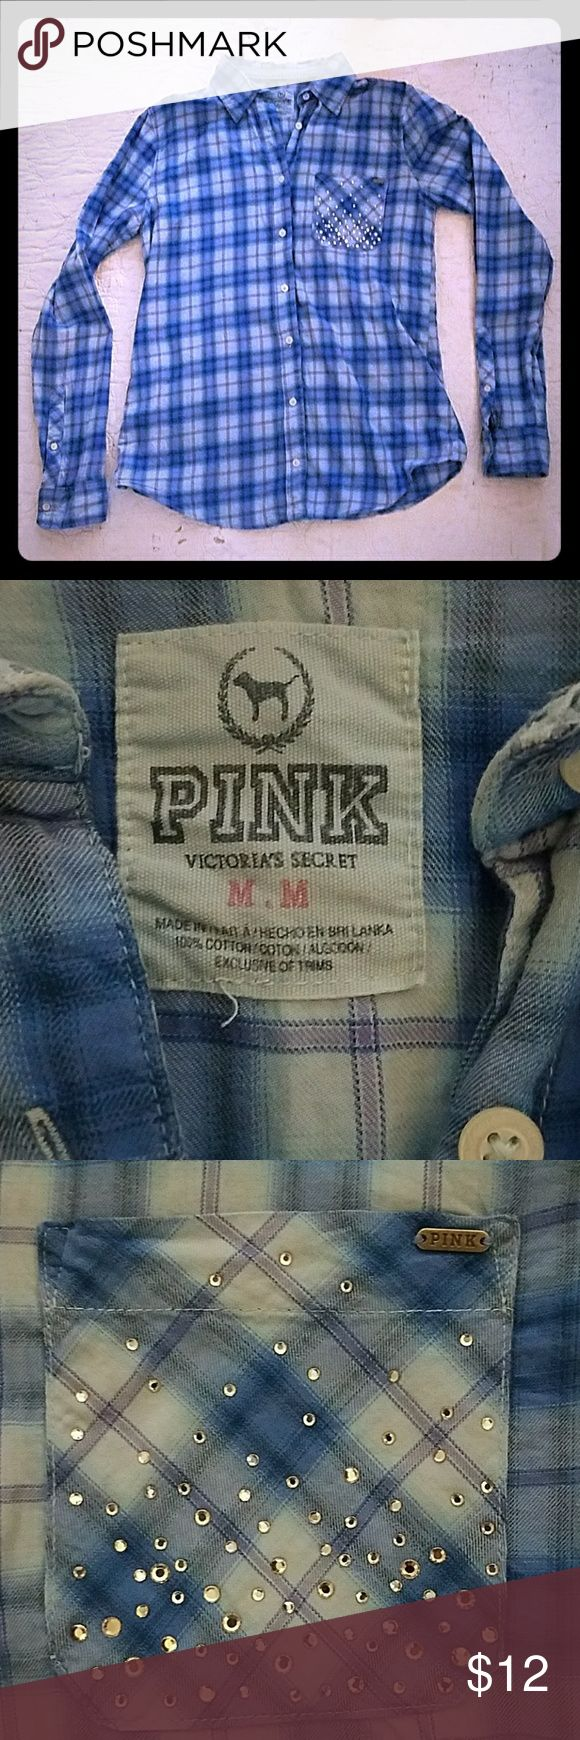 PINK Flannel shirt Very cute and comfy! Great condition! PINK Victoria's Secret Tops Button Down Shirts